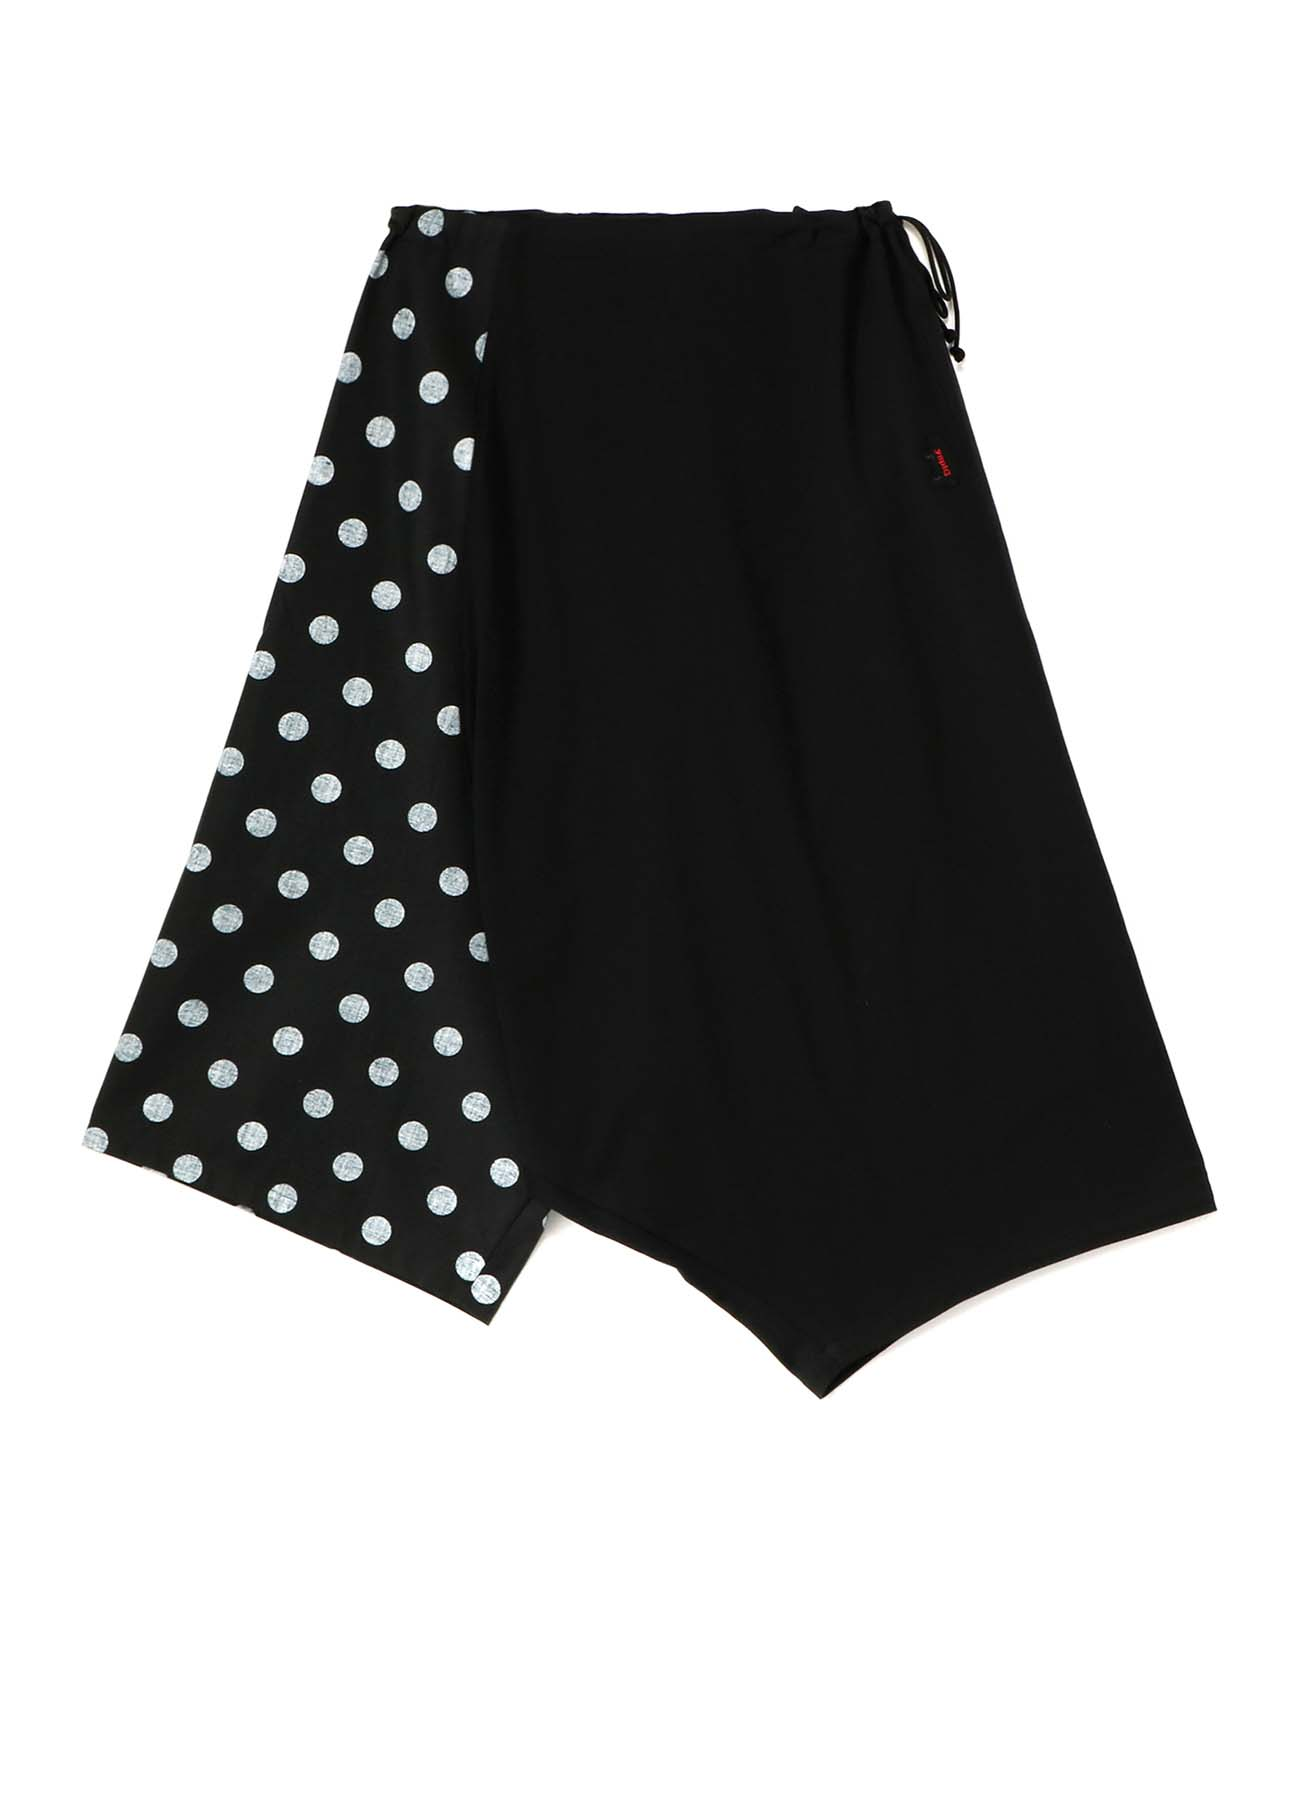 40/2 PS x 20/- TWILL POLKA DOT P PIG FLARE PANTS